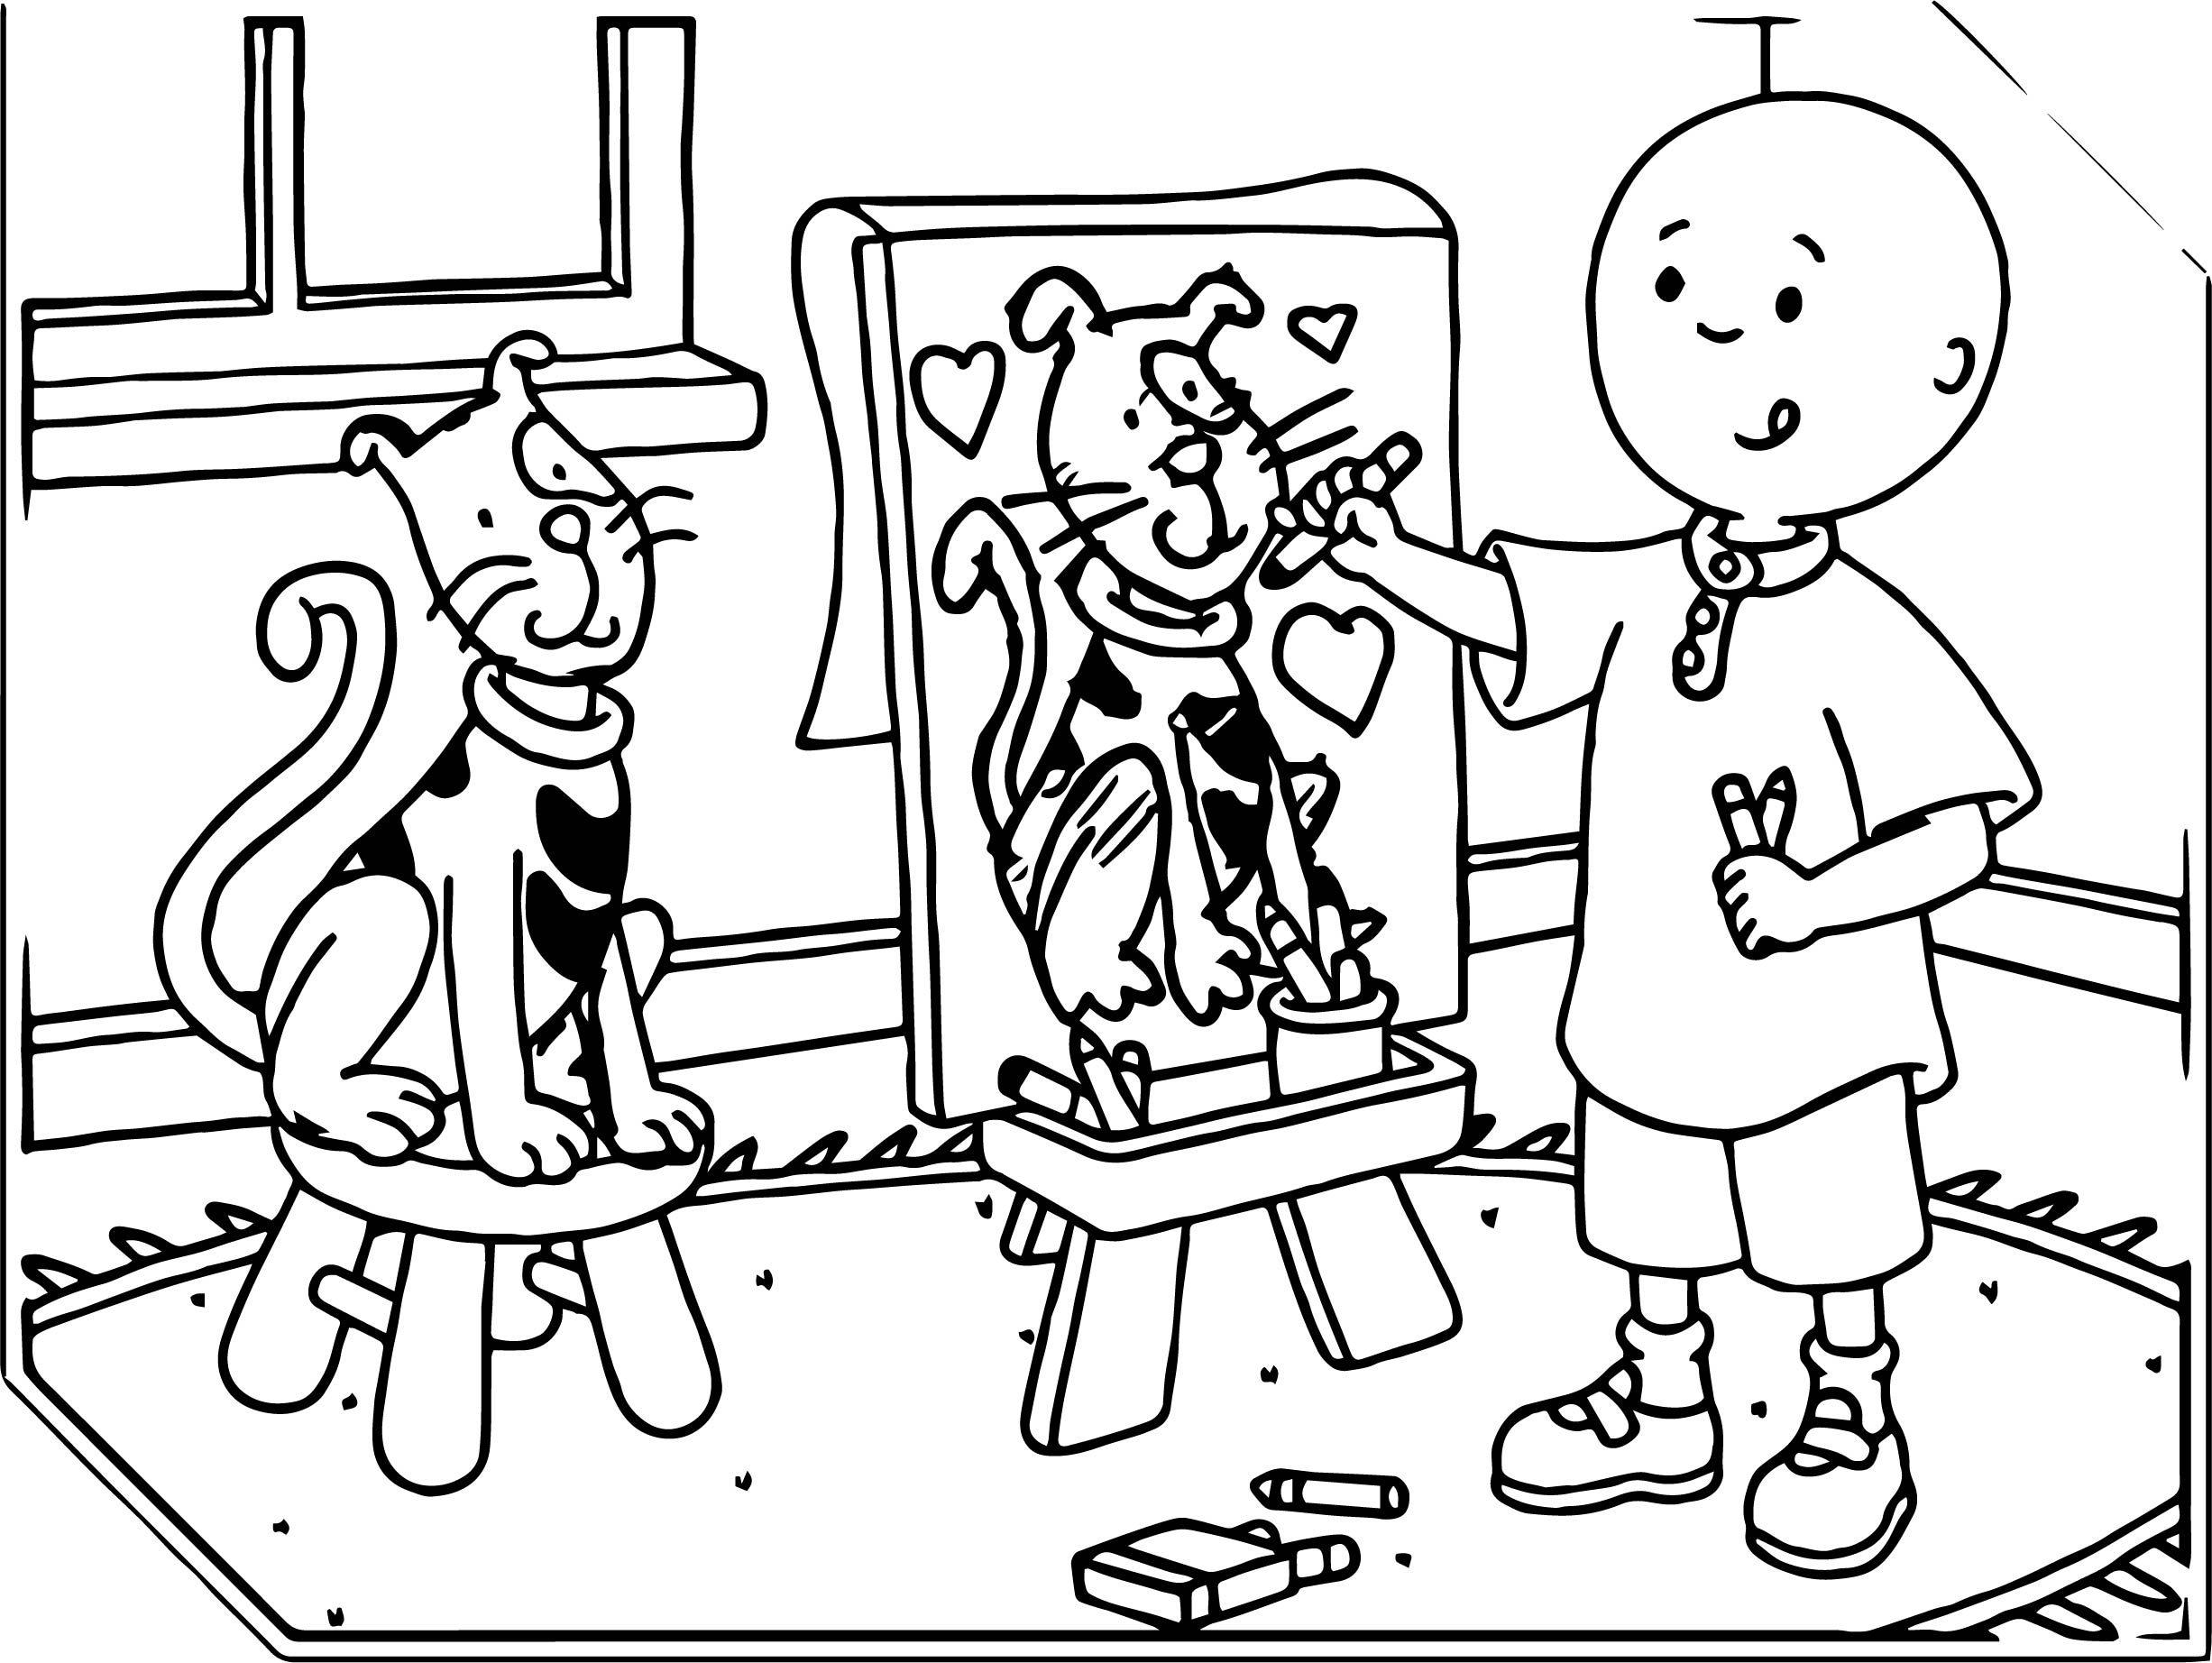 painting caillou coloring page - Caillou Coloring Pages